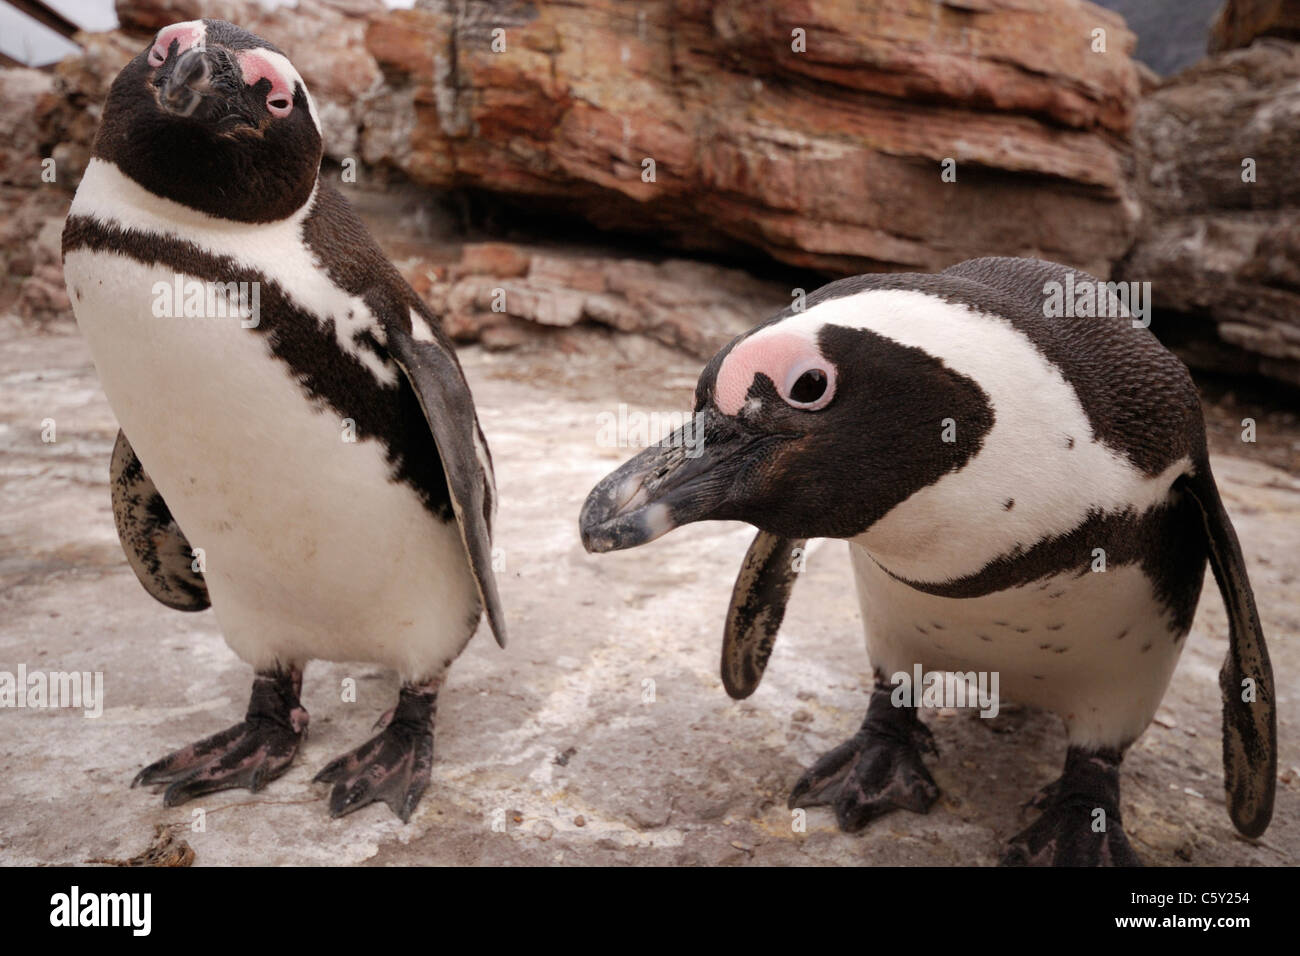 African (Jackass) penguins (Spheniscus demersus), Betty's Bay, South Africa - Stock Image